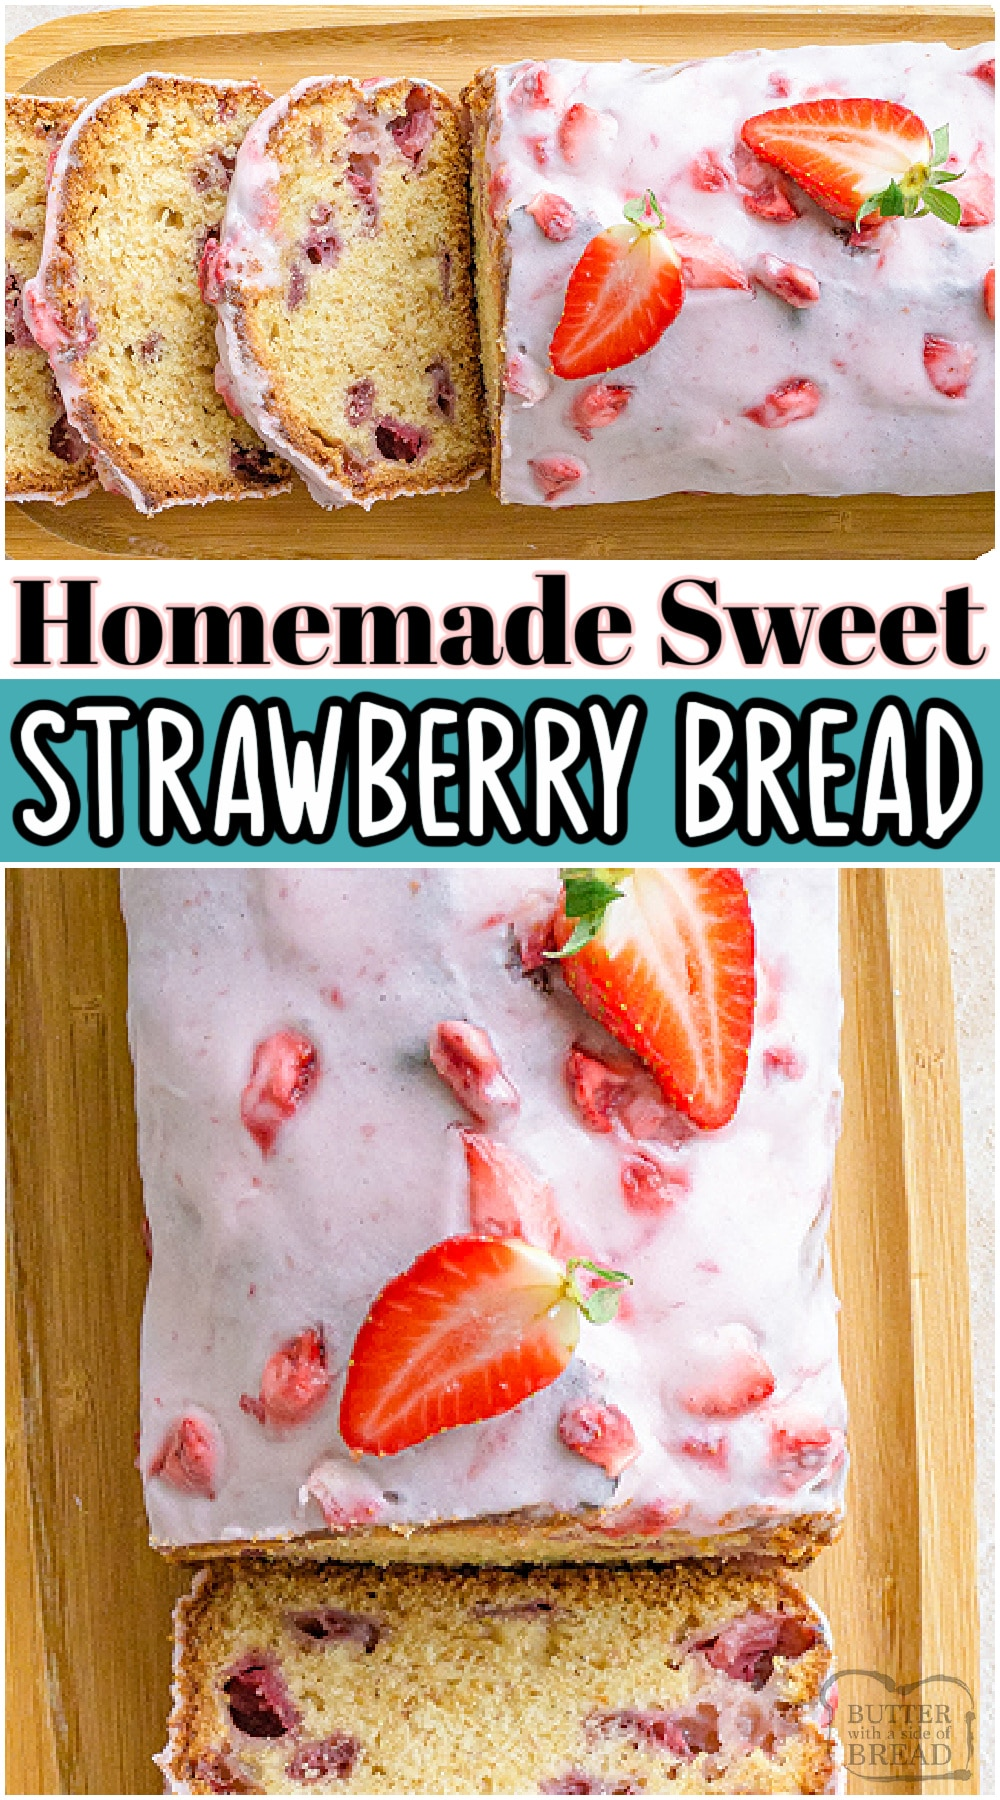 Strawberry Bread with Glaze is a delicious sweet bread recipe made with fresh strawberries. We love the classic ingredients and easy method for making this strawberry quick bread!